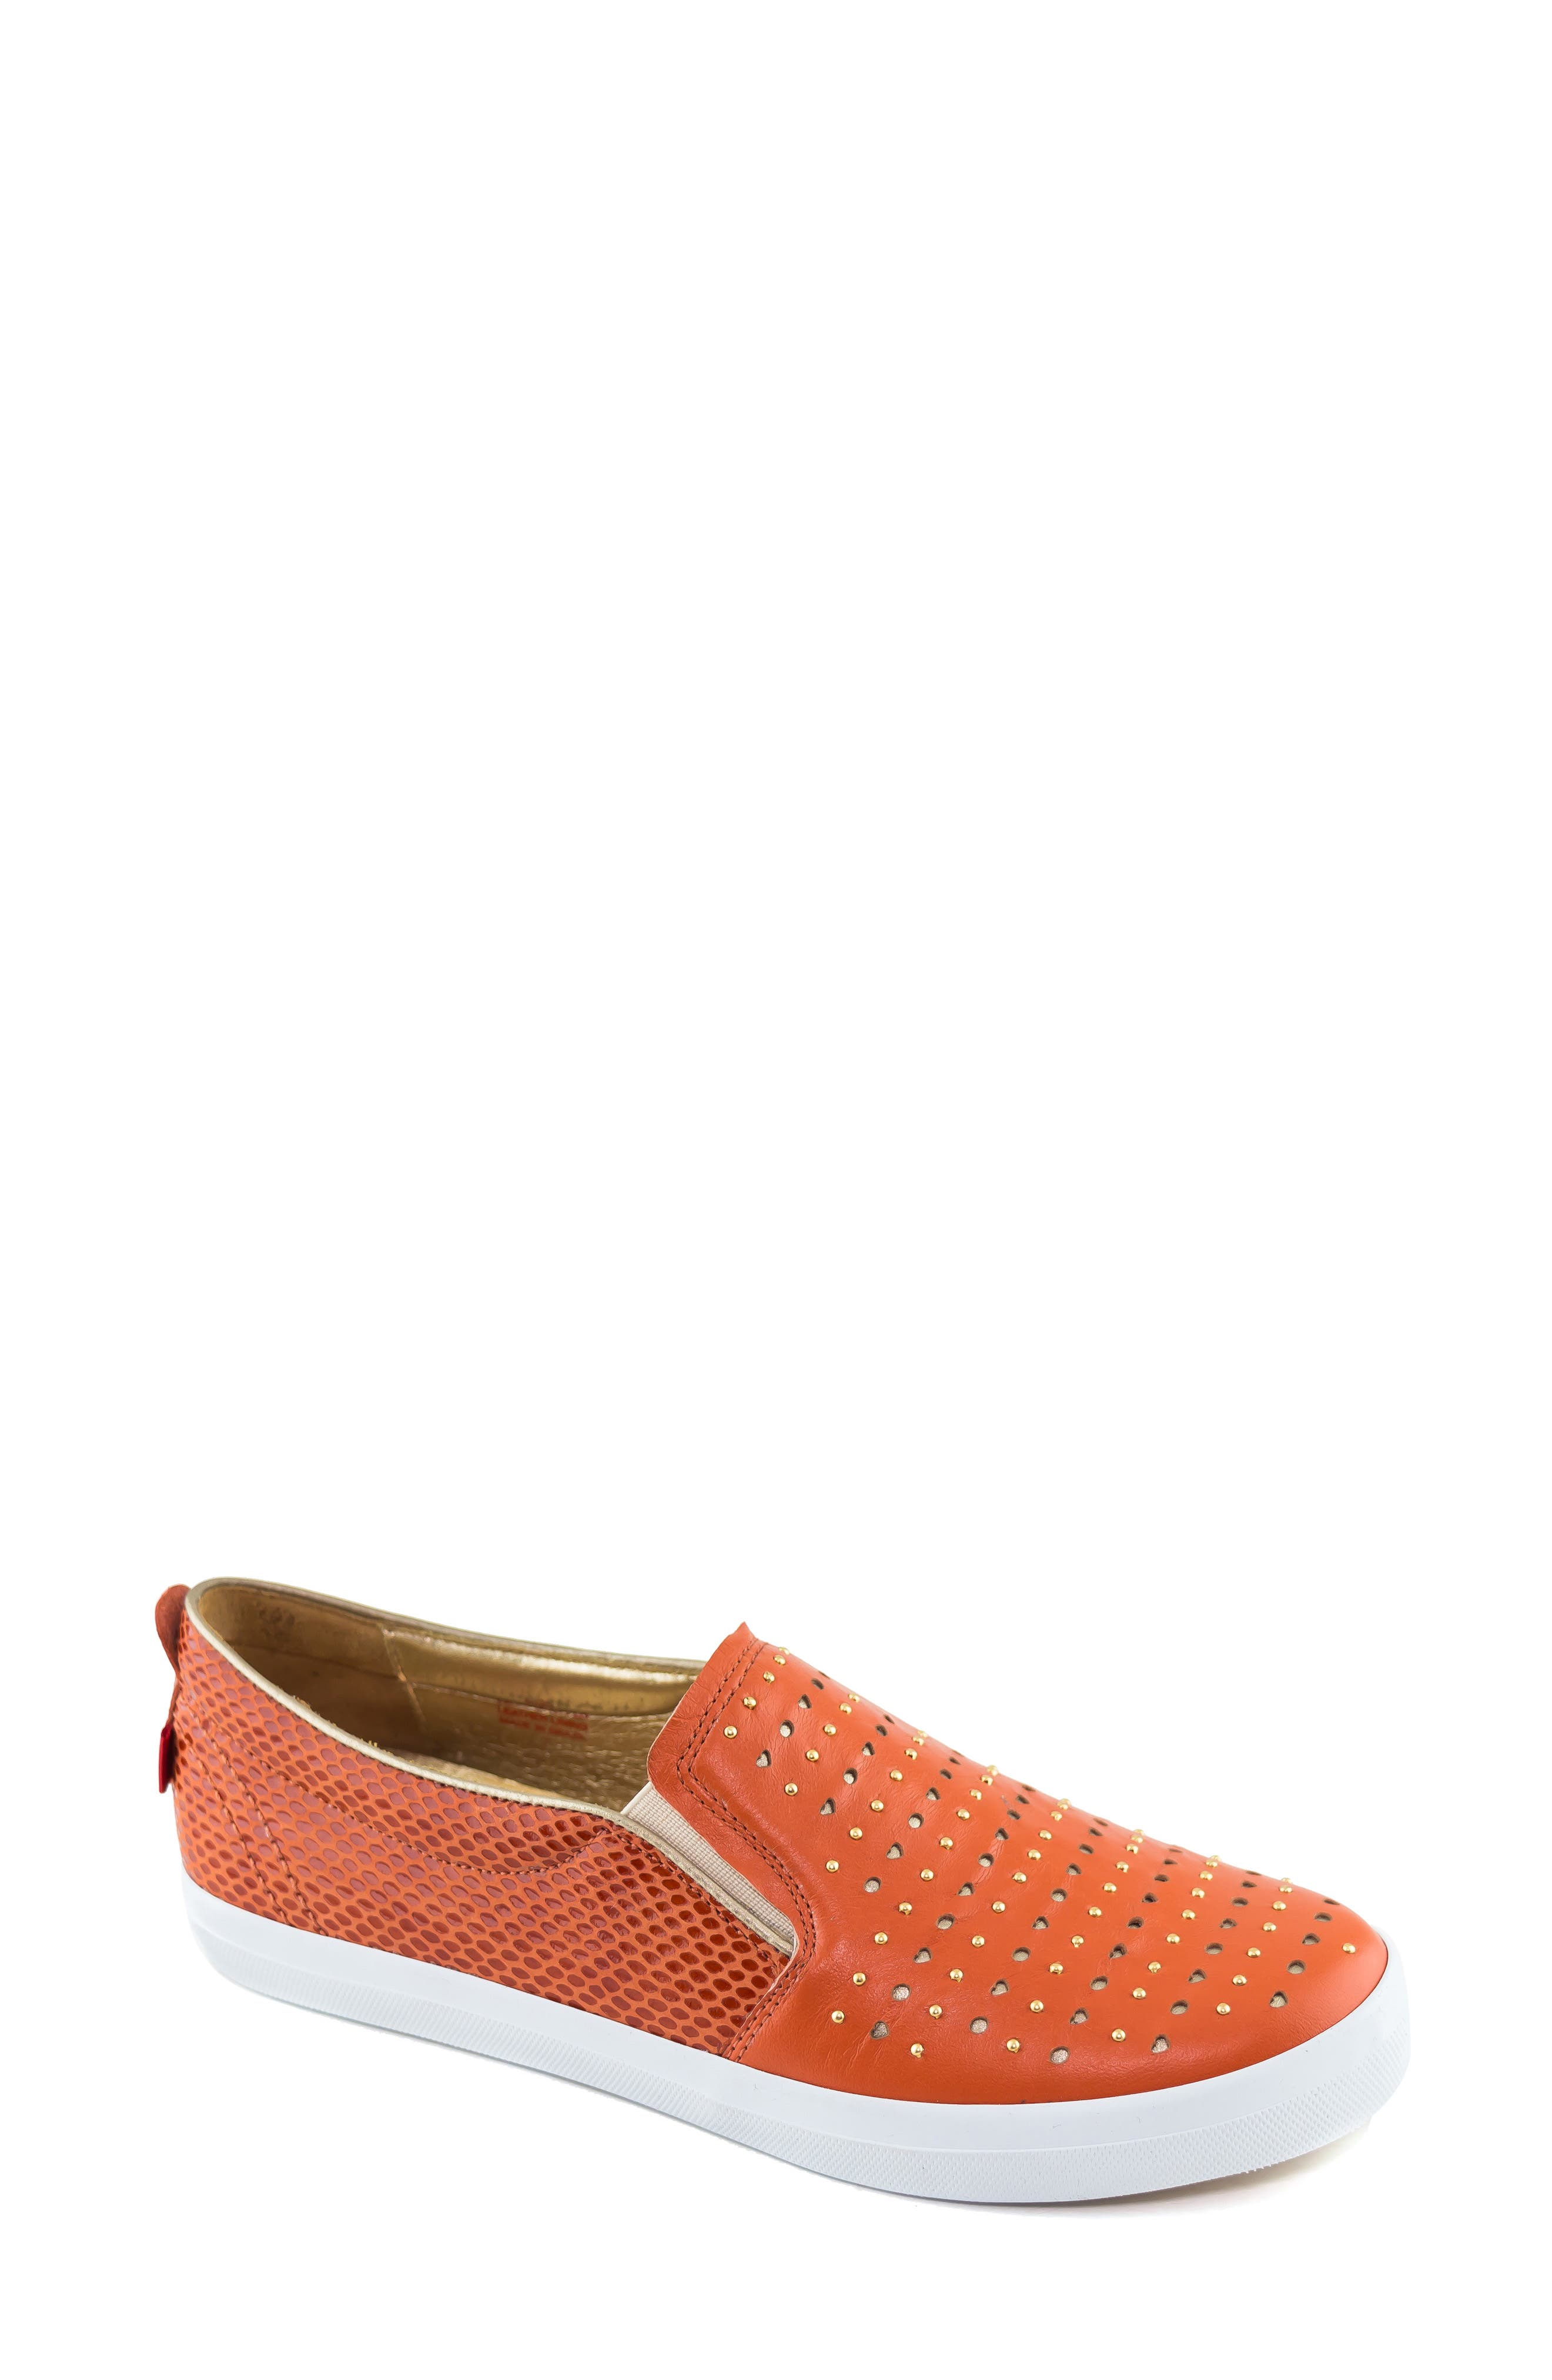 Soho Sneaker, Main, color, CORAL LEATHER